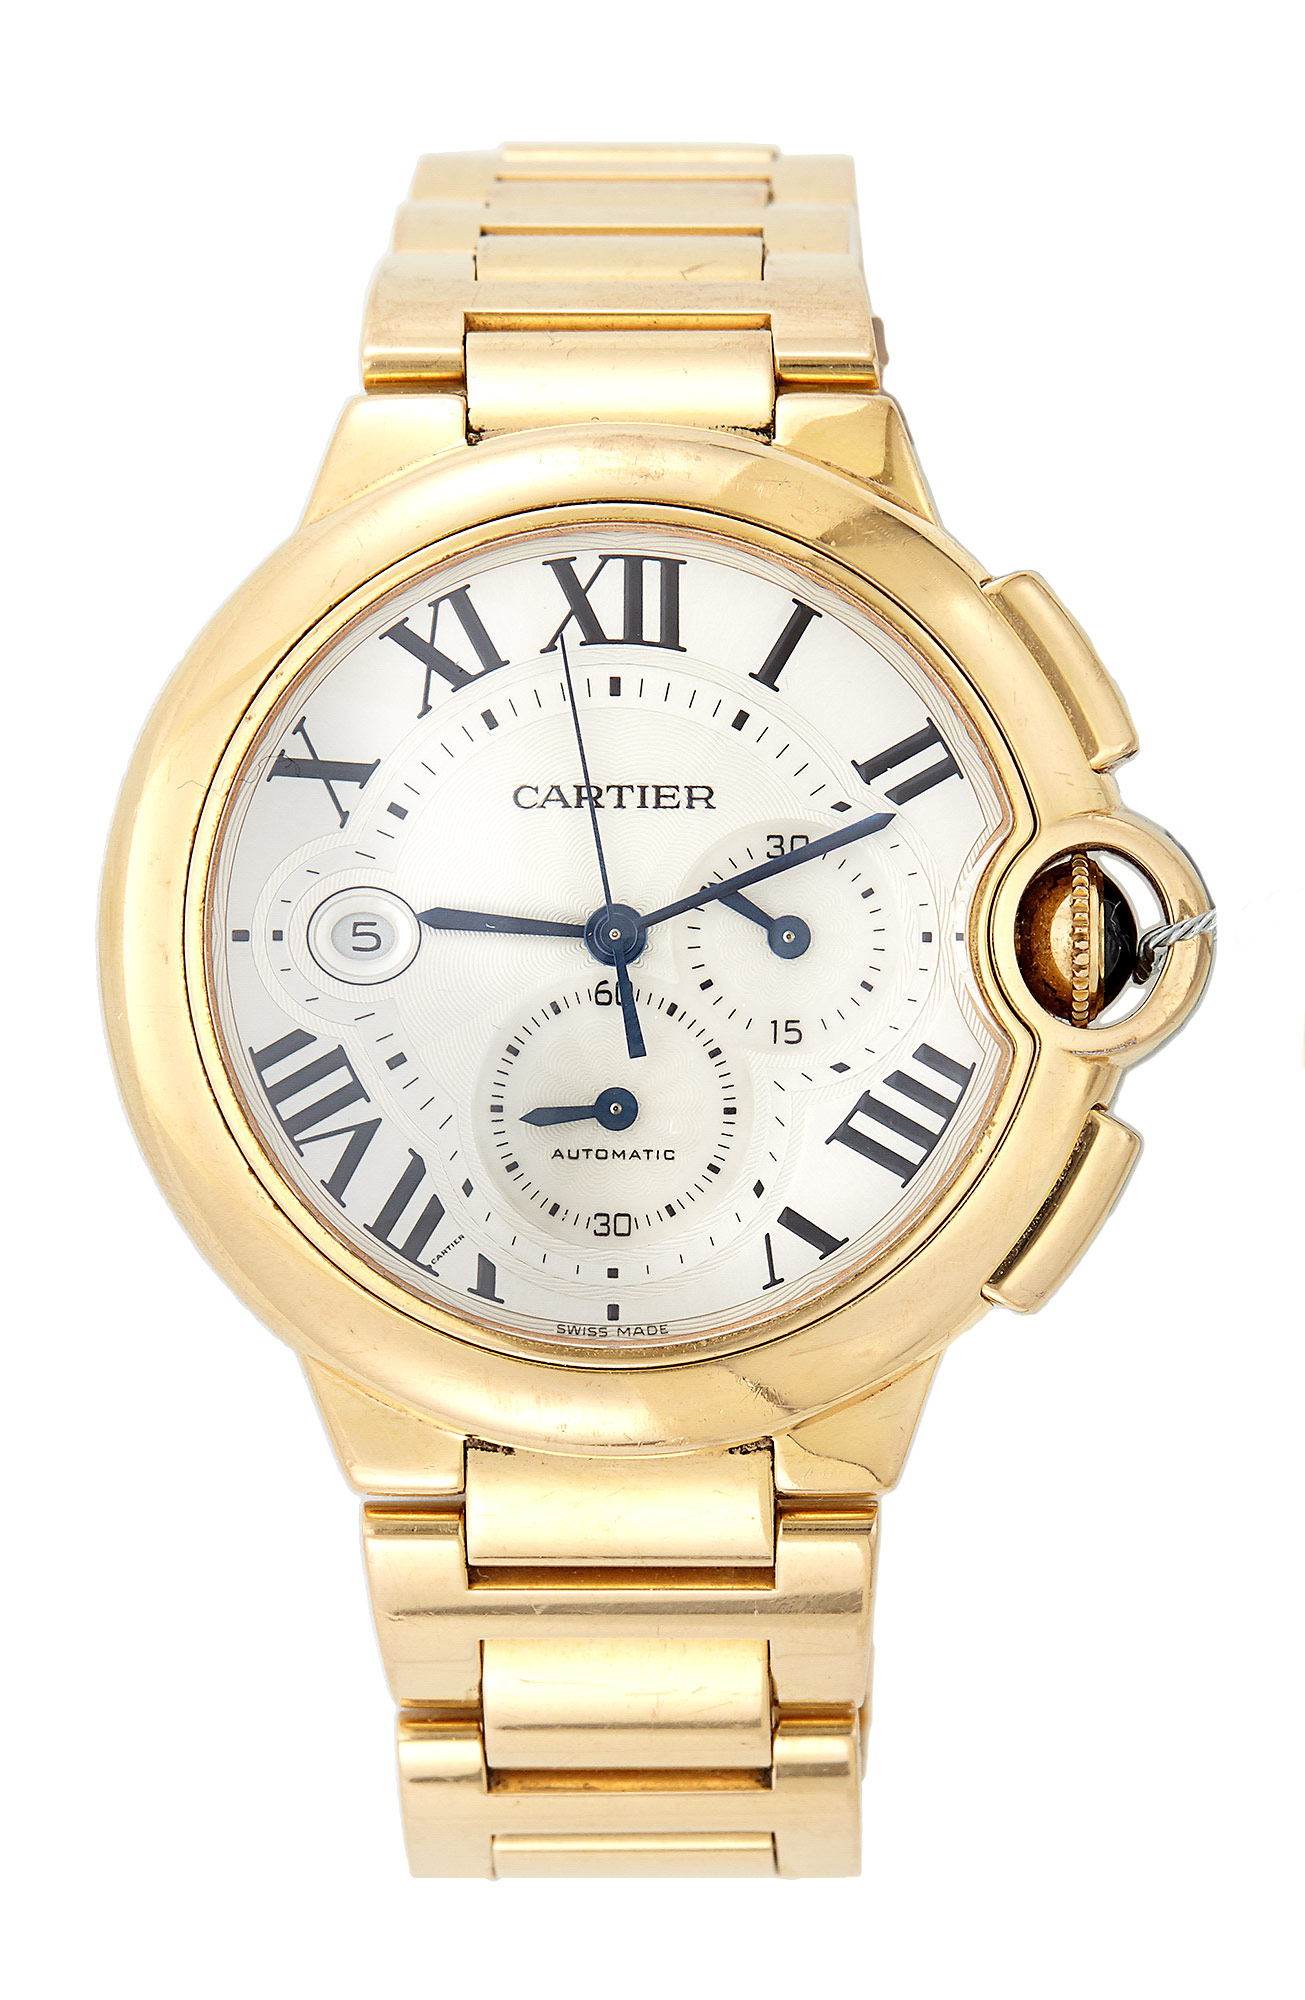 Lot image - Mans Gold Bracelet Watch, 33 Jewels, Cartier Ballon Bleu, Chronograph, Automatic, 18K 145 dwt. all